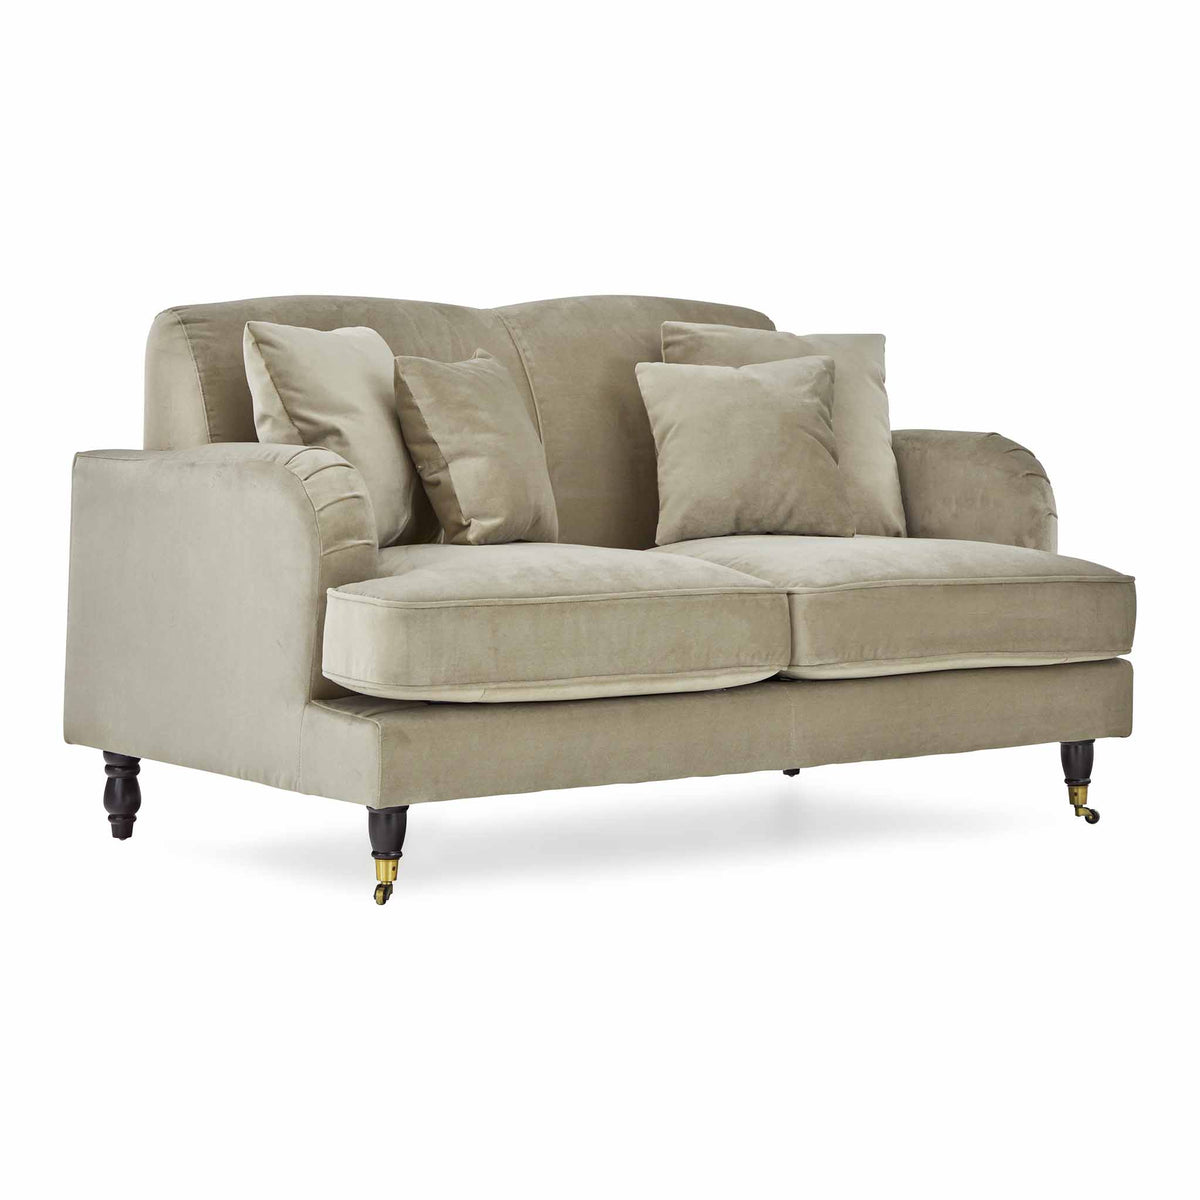 Piper Putty Velvet 2 Seater Settee from Roseland Furniture